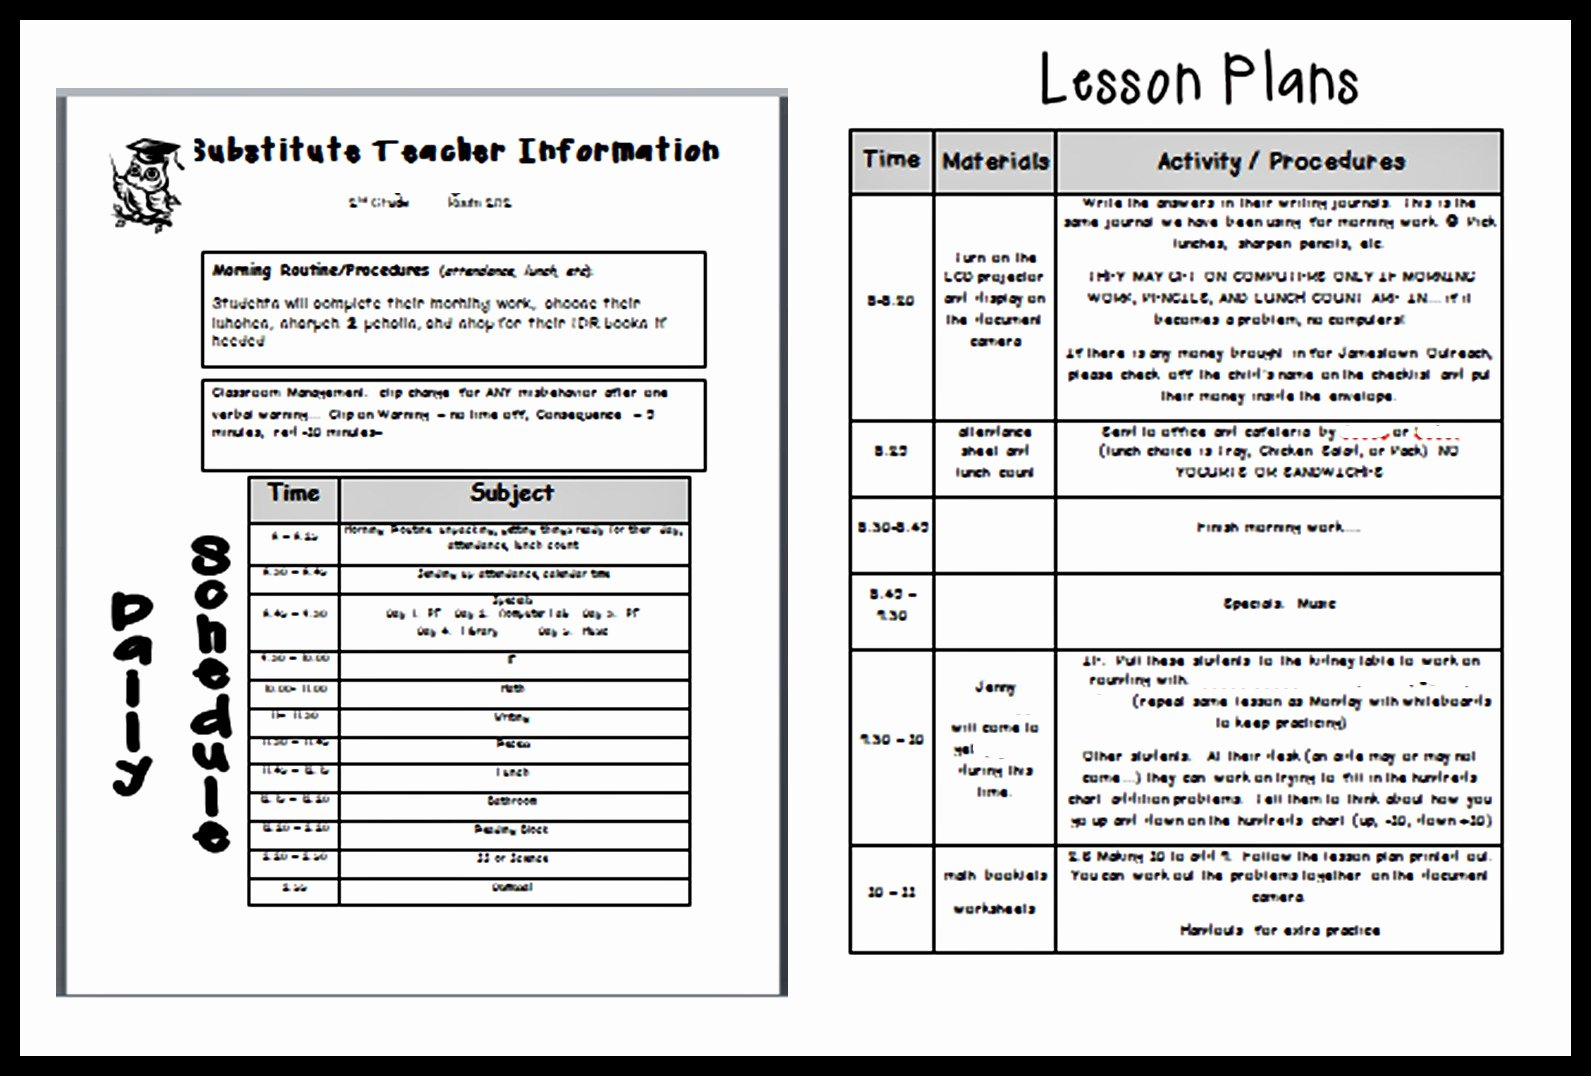 Teacher Lesson Plans Template Beautiful Lesson Plan Template for Substitute Teacher – Printable